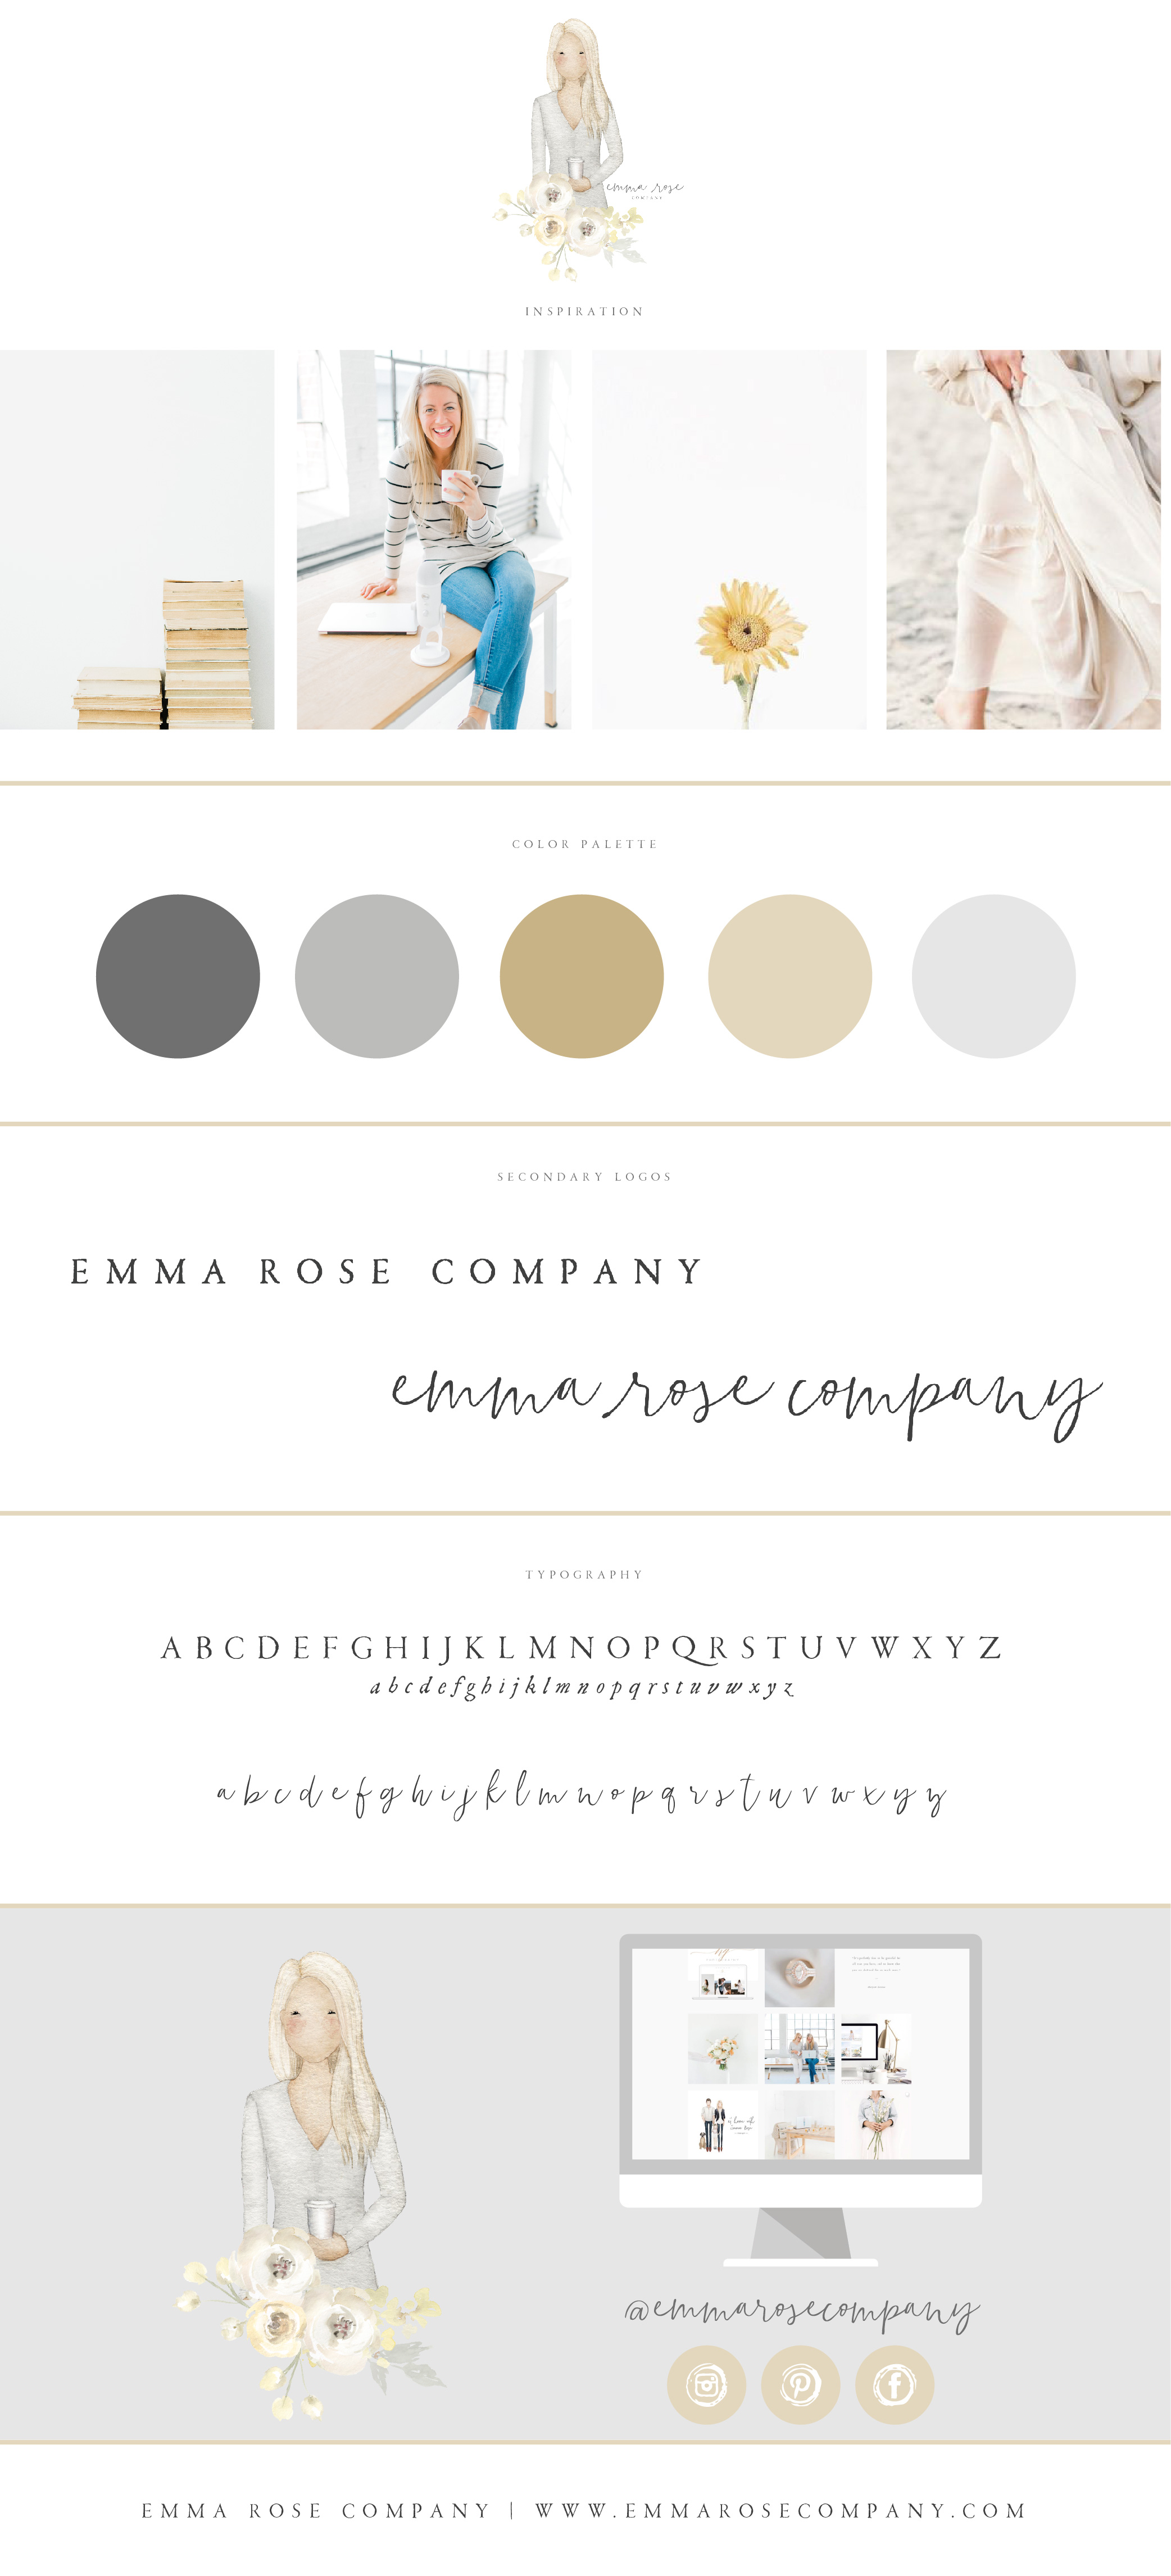 Emma Rose Company Website Launch | Squarespace Website Designer For Photographers | A Branding Journey Emma Rose Photographer Brand Inspiration Board.jpg